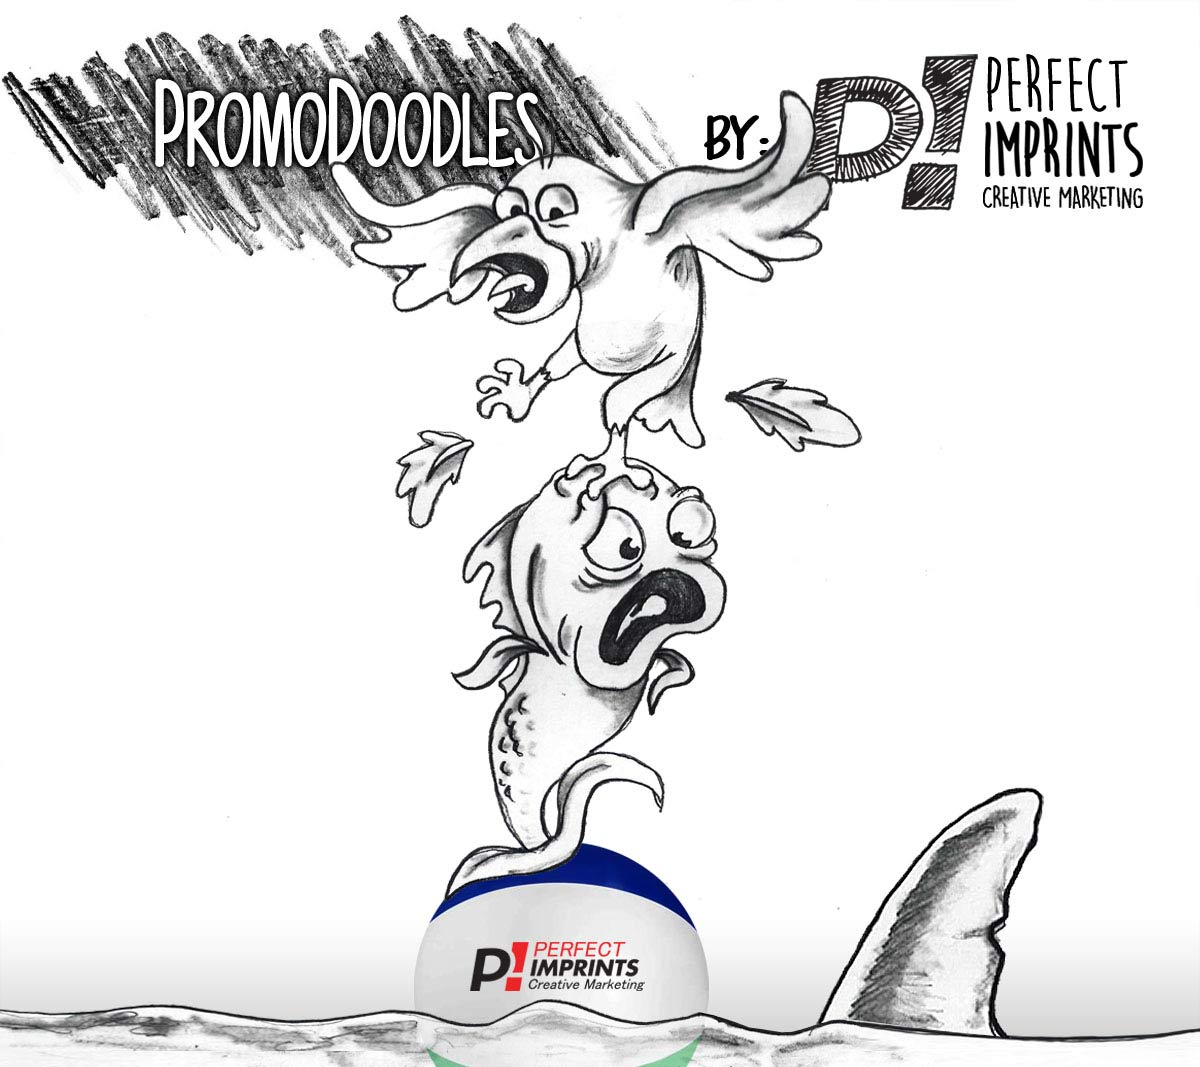 PromoDoodles by Perfect Imprints – Beach Ball Shark Attack